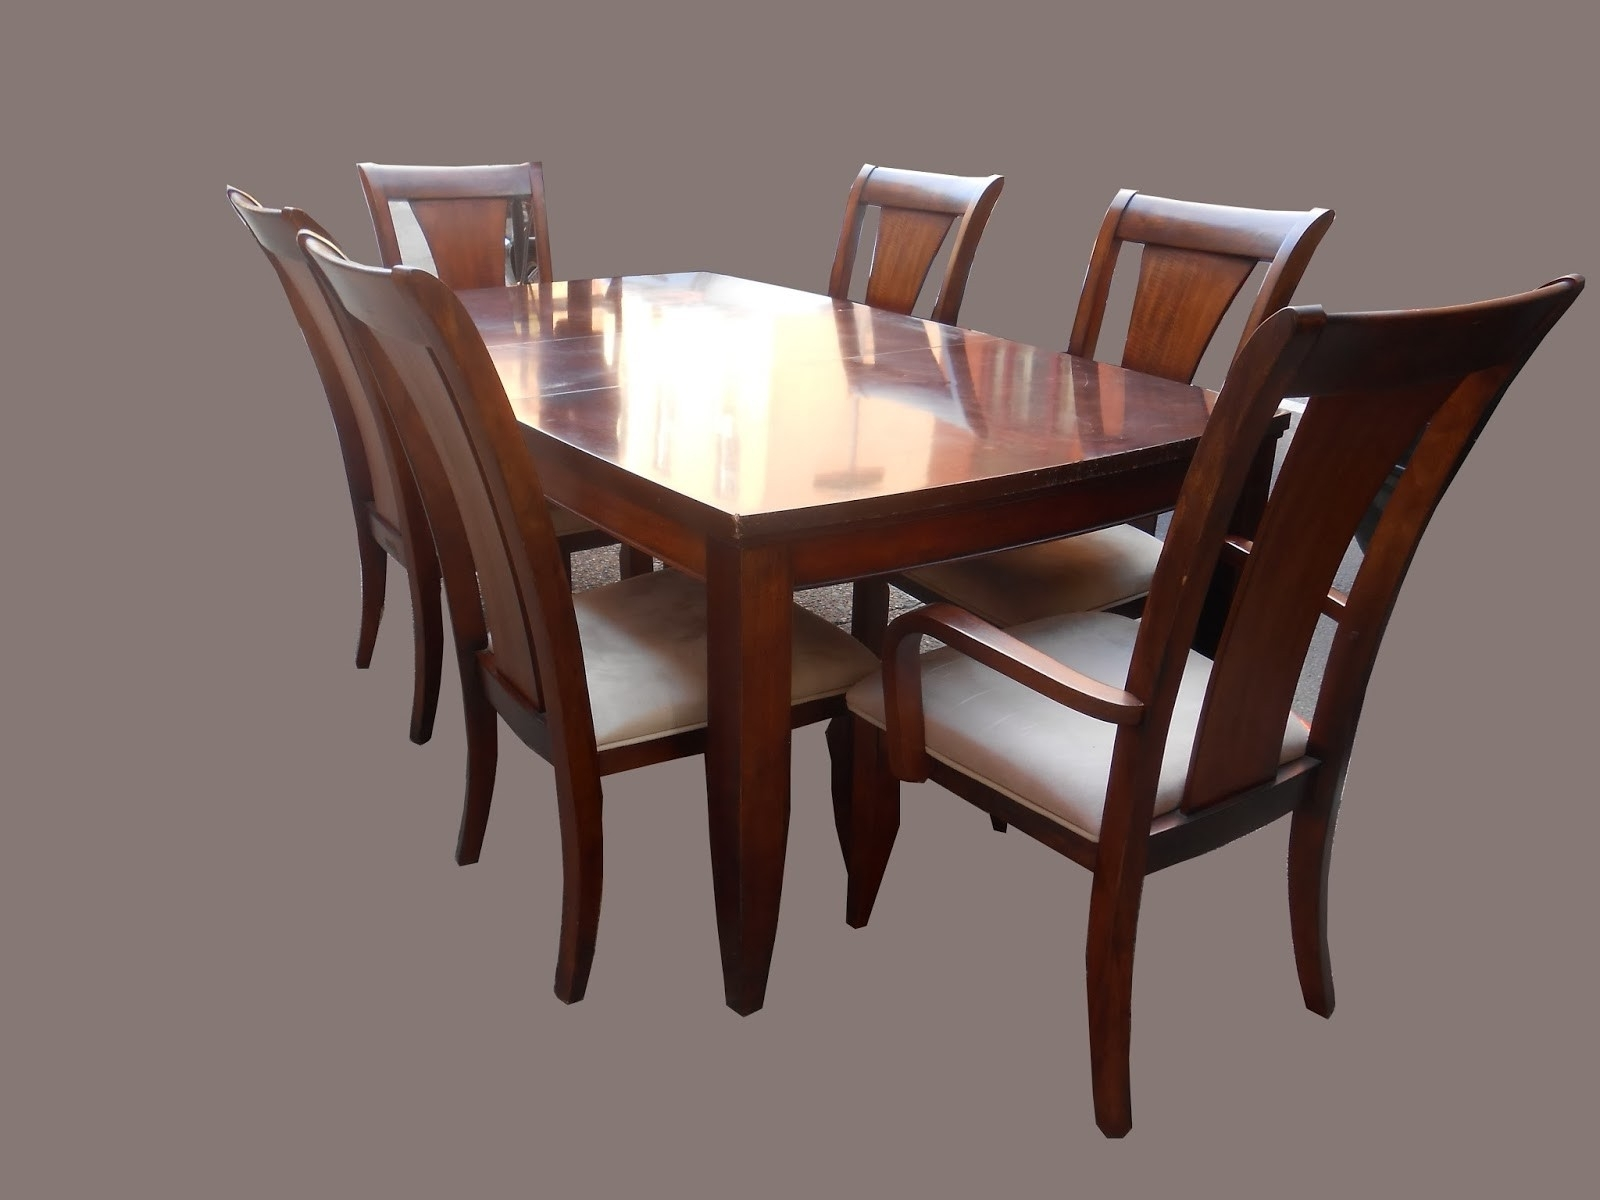 Dining Table Sets With 6 Chairs Awesome Uhuru Furniture Inside Most Current Mahogany Dining Tables Sets (View 6 of 25)